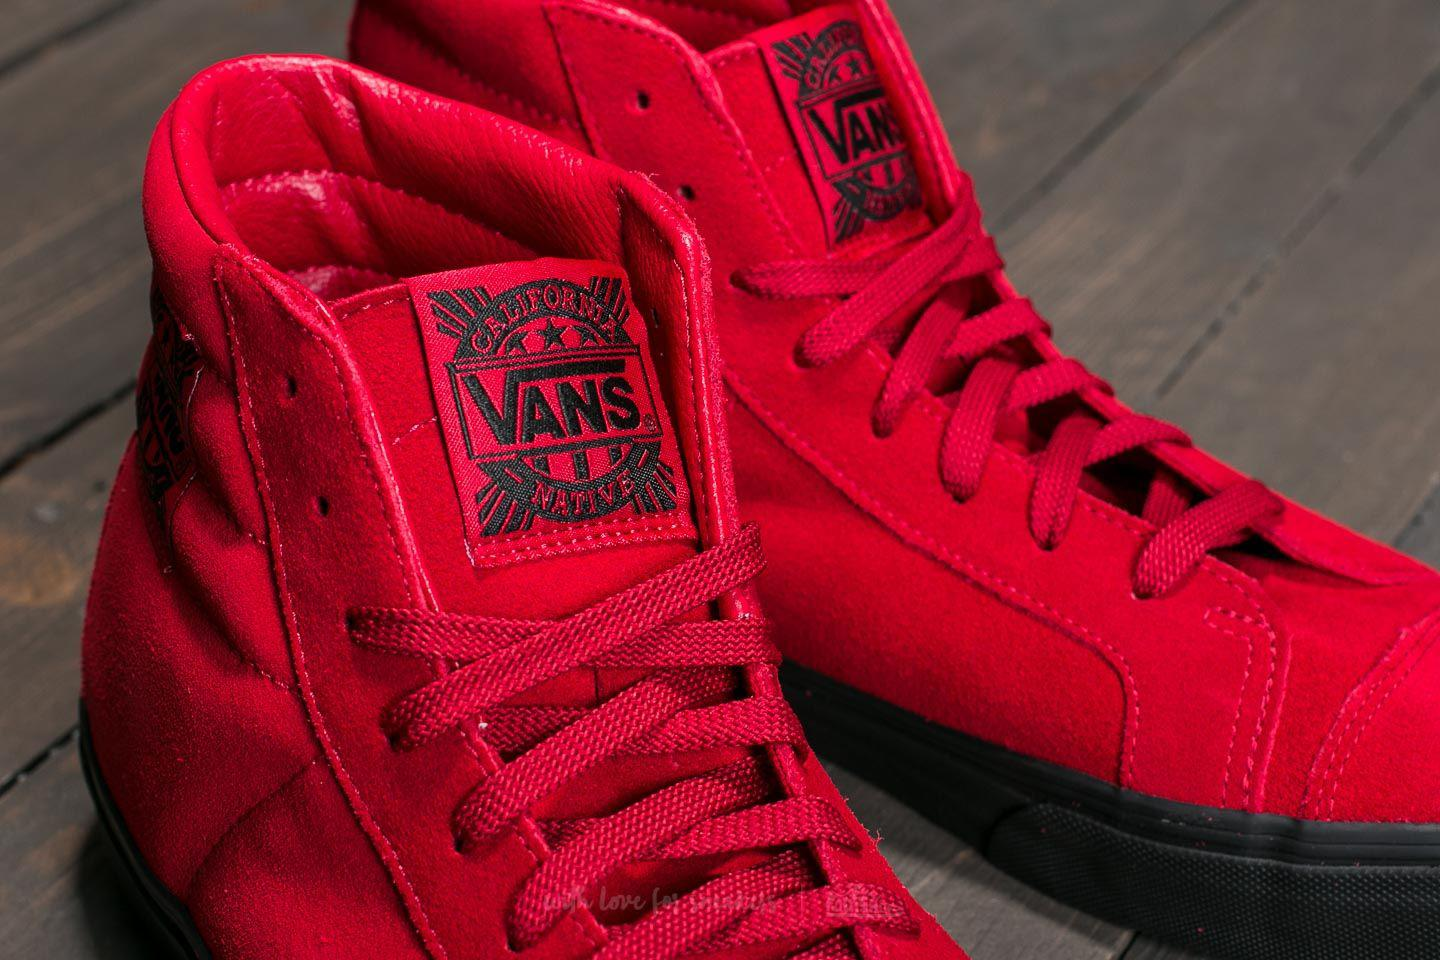 b540ddb49c1 Lyst - Vans Style 238 (native Suede) Red  Black in Red for Men